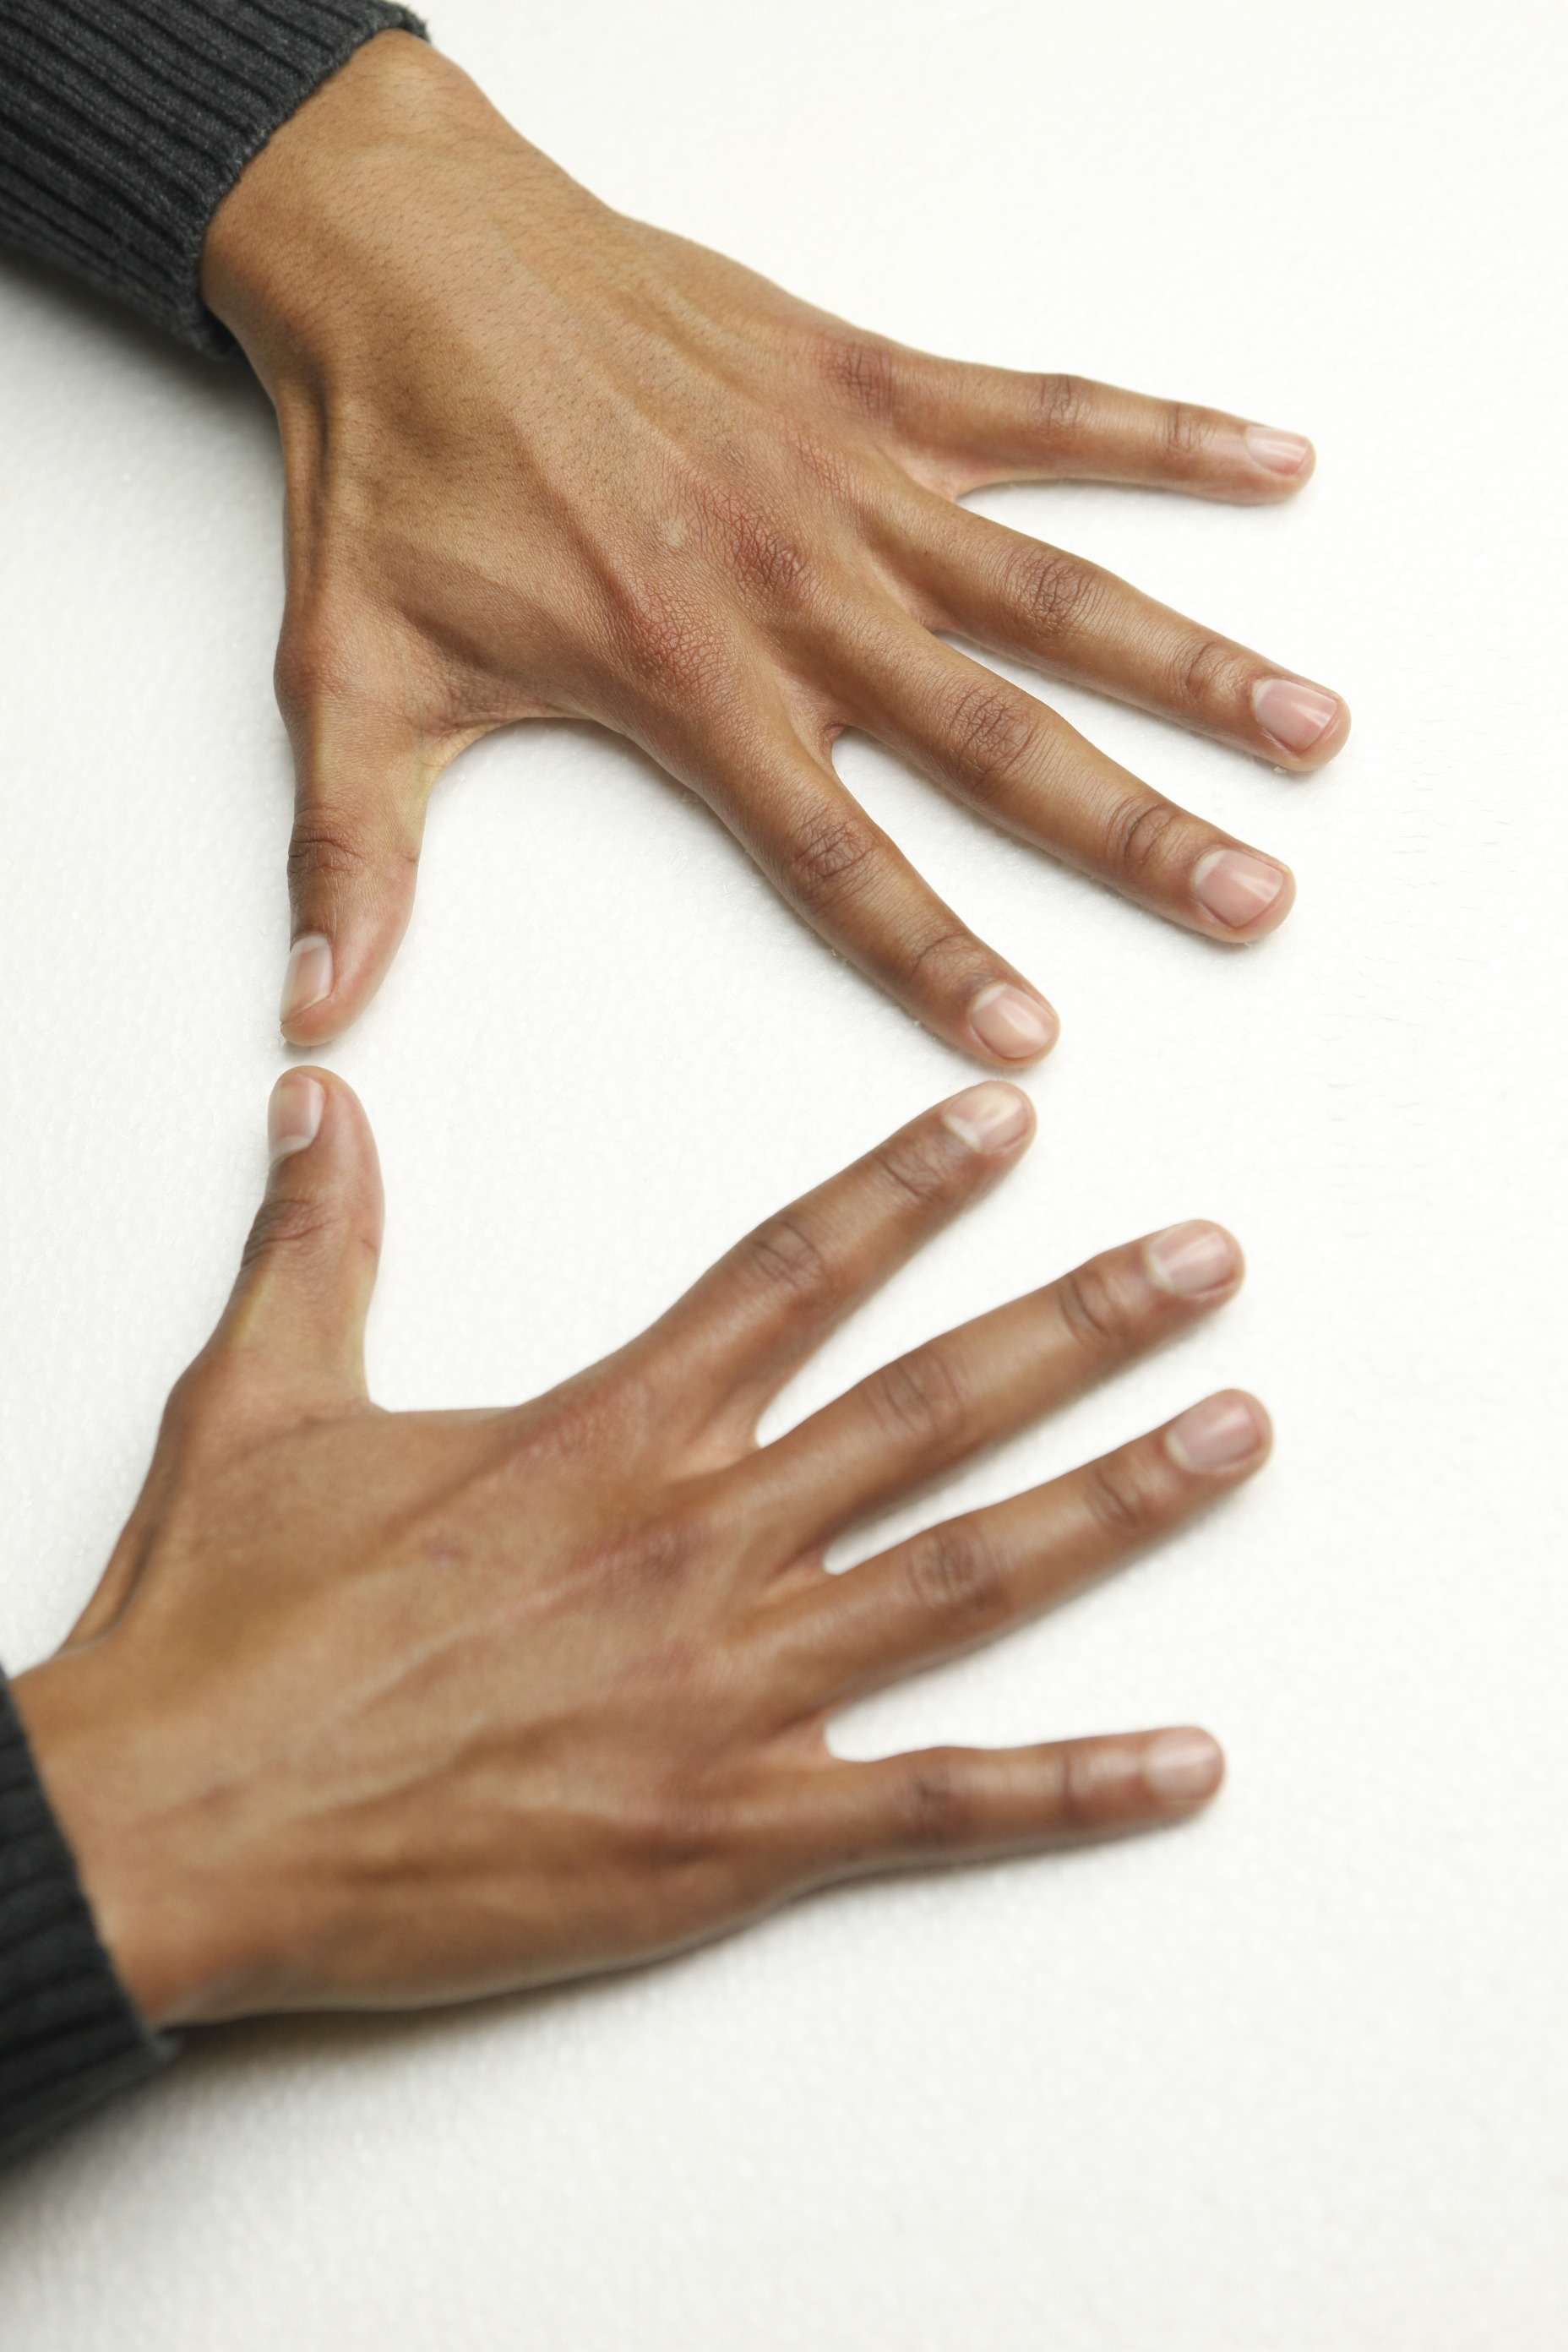 Ray Martell_Hands3